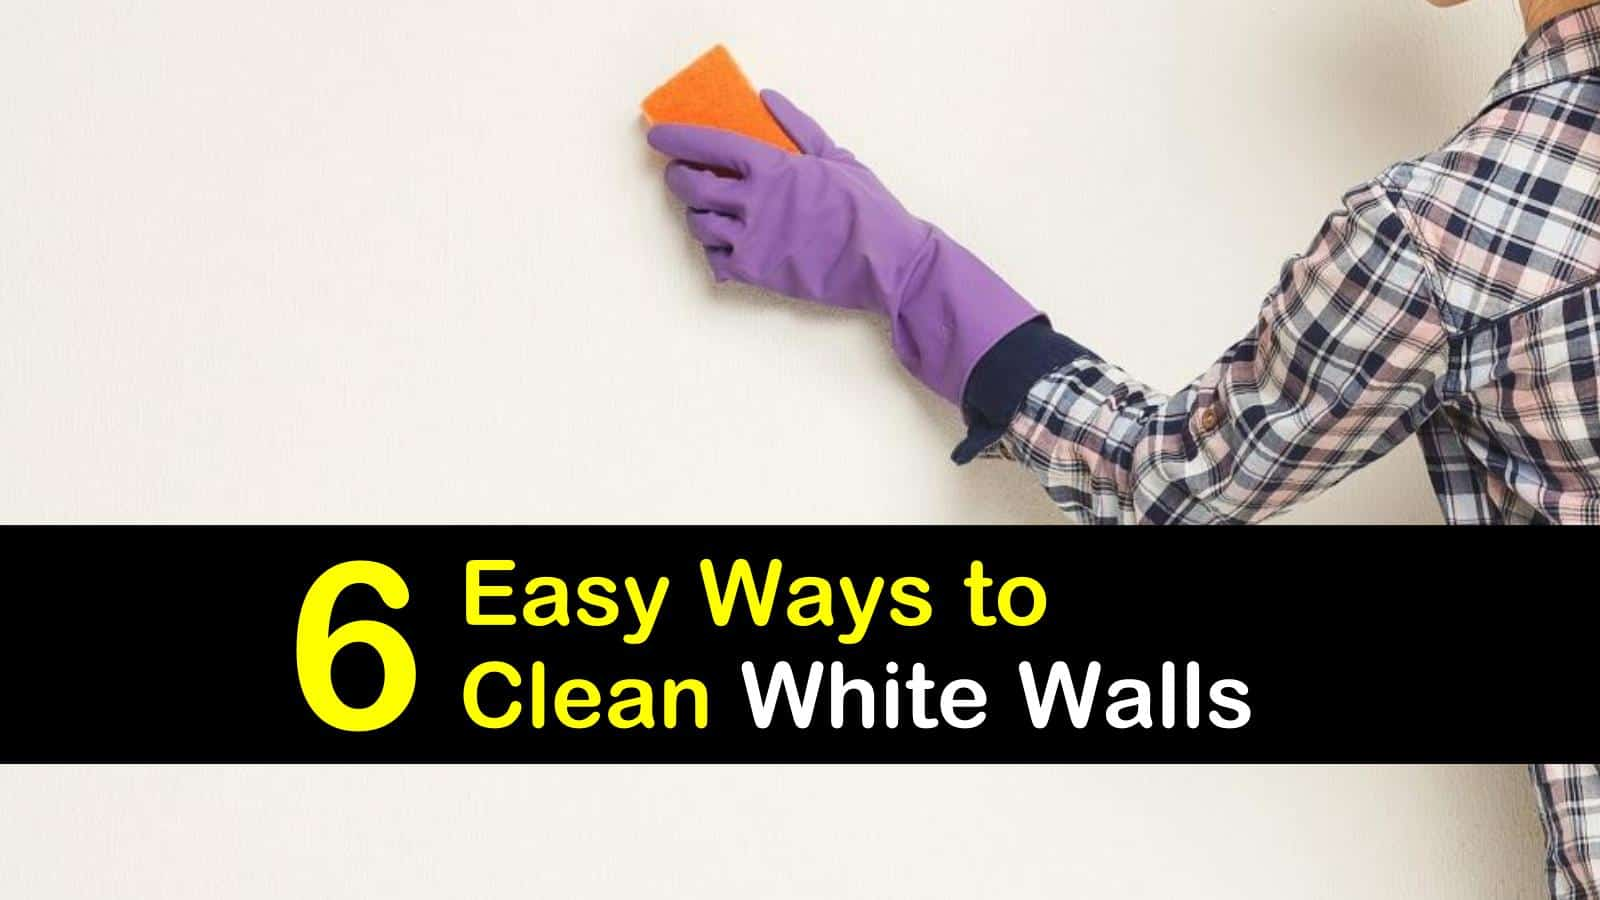 how to clean white walls titleimg1